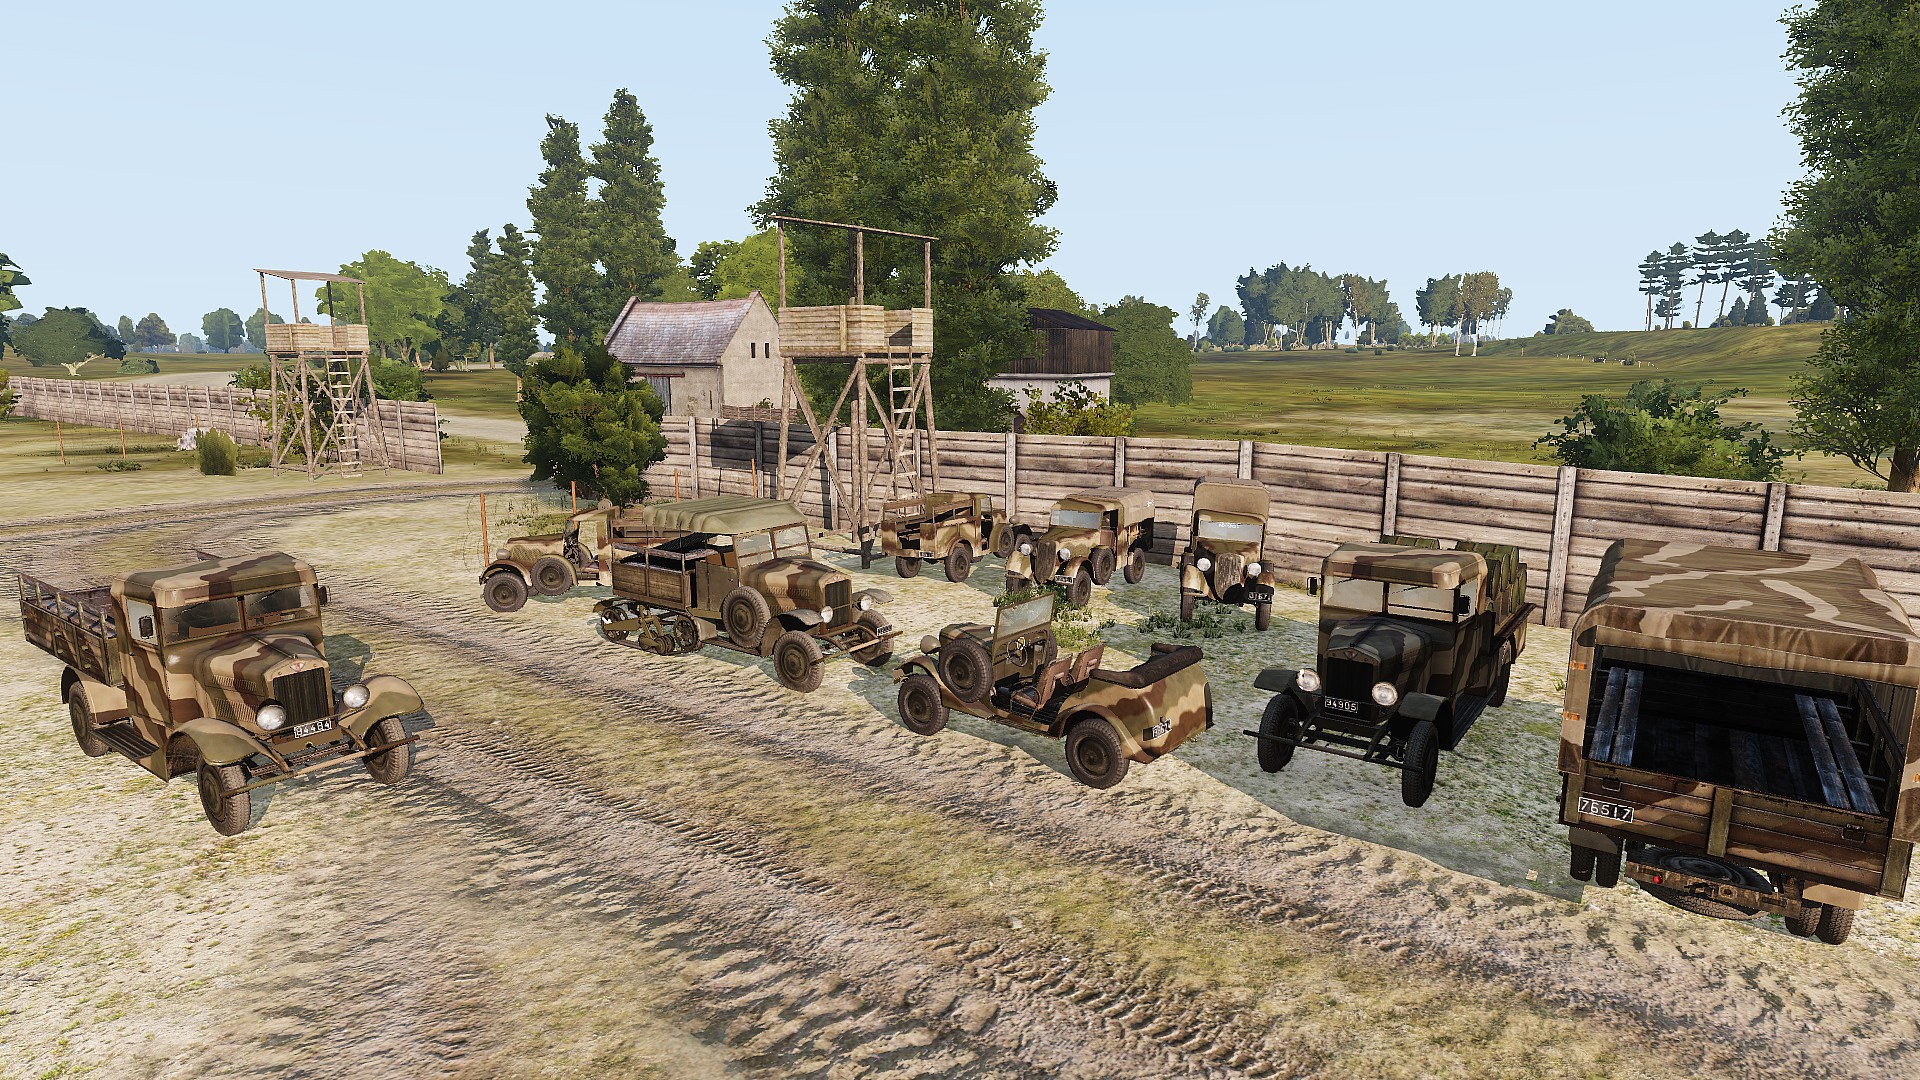 Home page - September '39 Mod for Arma 3